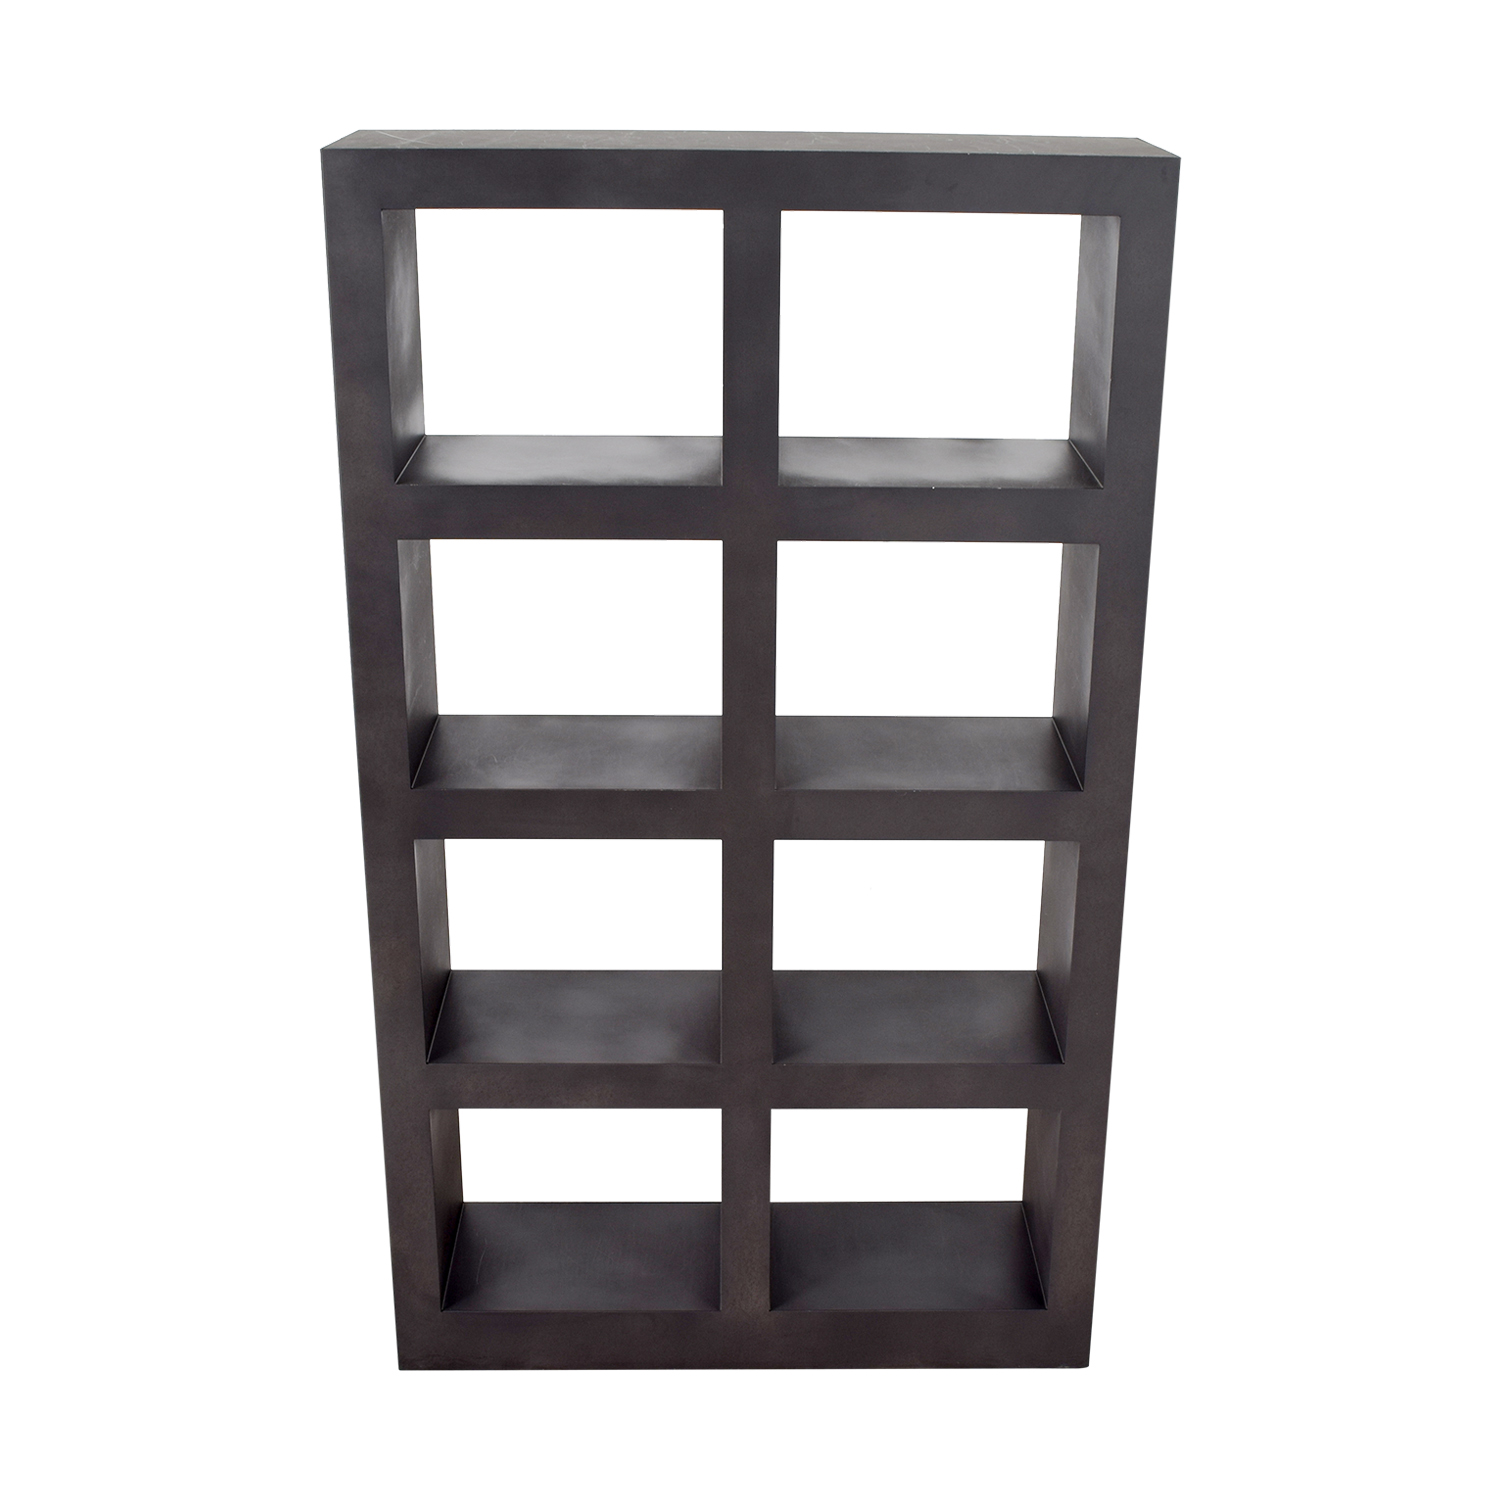 Crate & Barrel Crate & Barrel Shadow Box Bookcase on sale